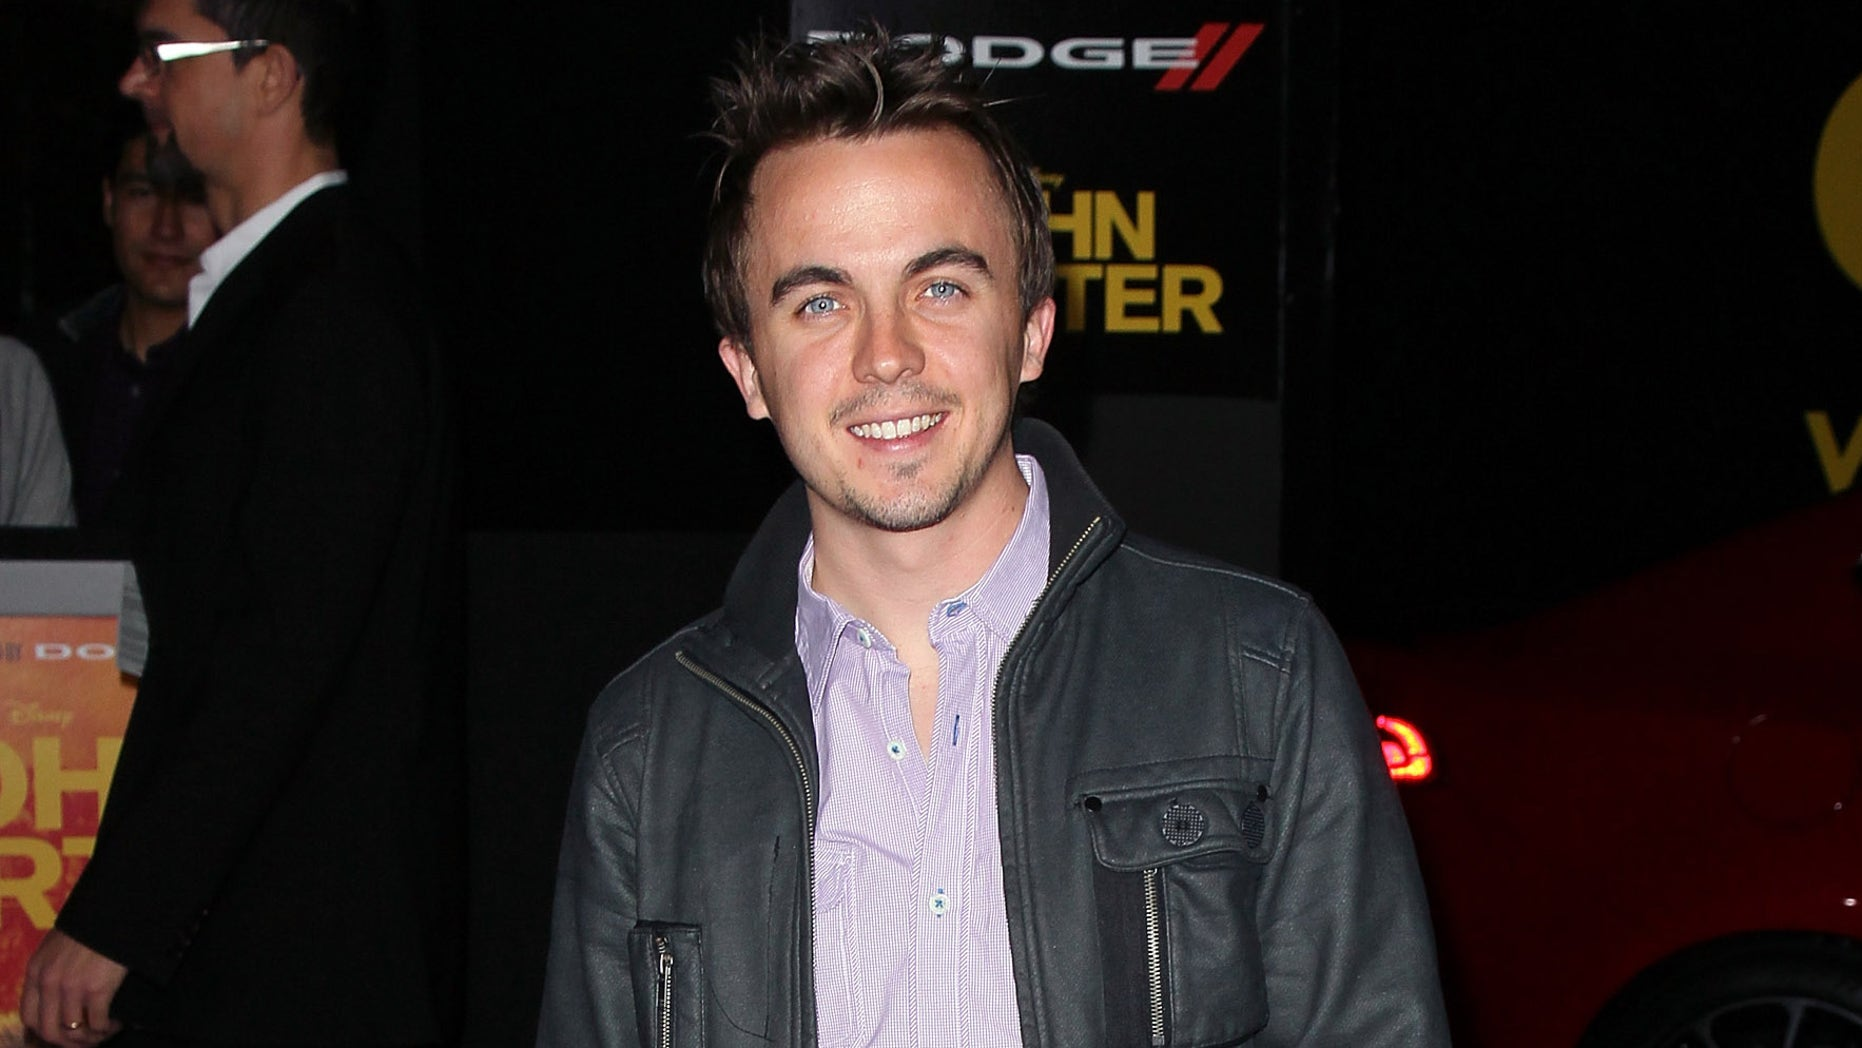 """LOS ANGELES, CA - FEBRUARY 22:  Actor Frankie Muniz attends the premiere of Walt Disney Pictures' """"John Carter"""" at Regal Cinemas L.A. Live on February 22, 2012 in Los Angeles, California.  (Photo by David Livingston/Getty Images)"""